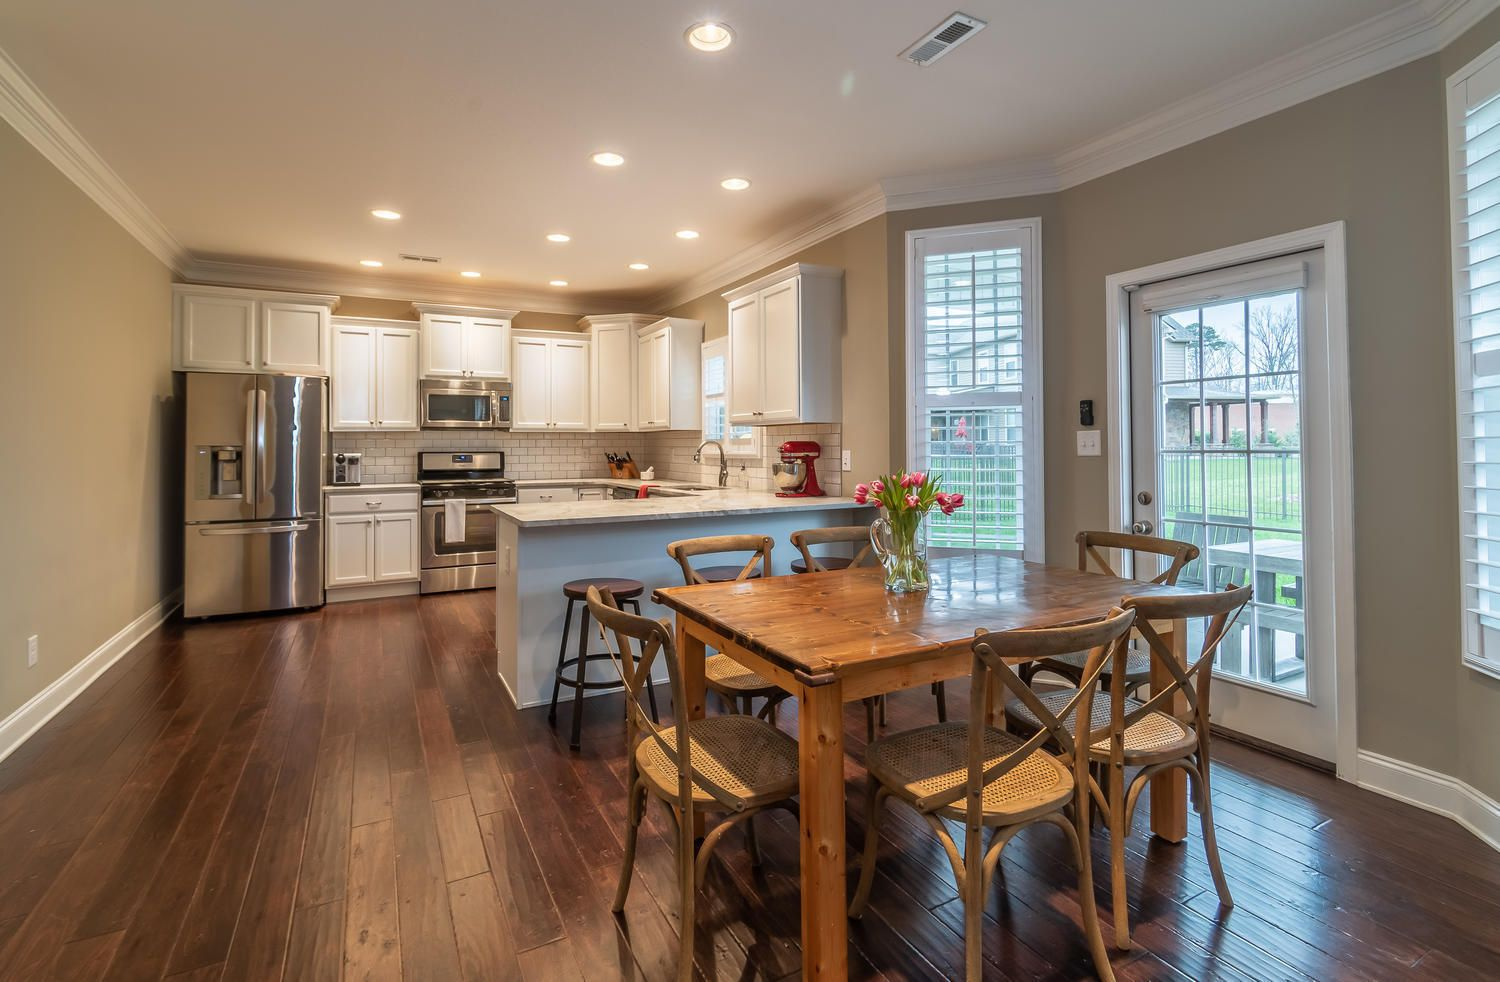 12220 Harpers Ferry Ln-large-011-19-Kitc